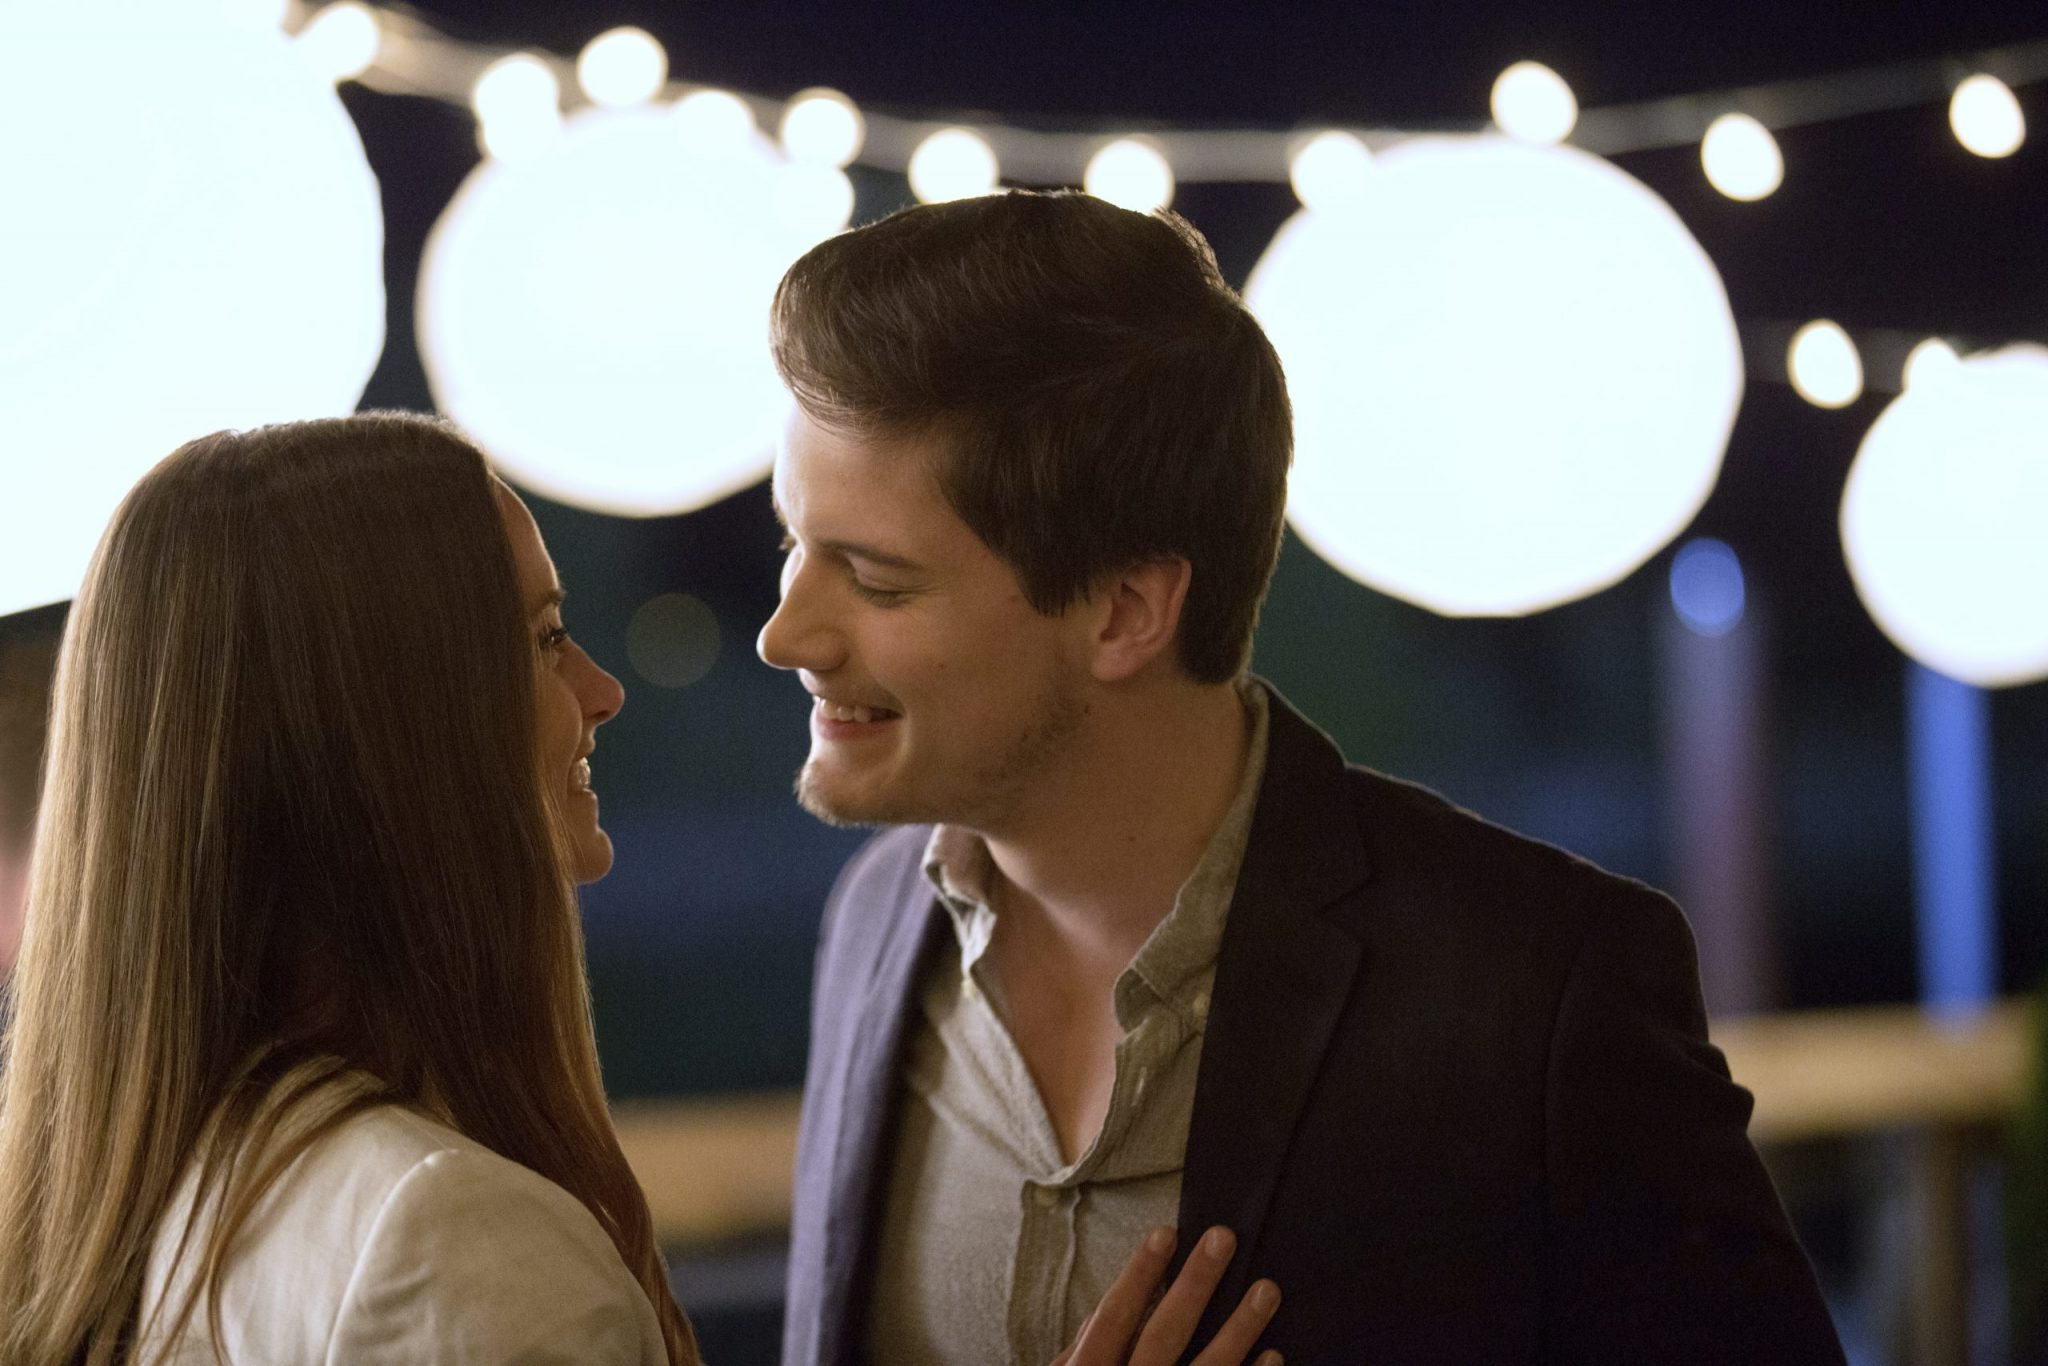 Bad Date Chronicles, Hallmark, Photo: Merritt Patterson, Justin Kelly Credit: ©2020 Crown Media United States LLC/Photographer: Courtesy Larry Levinson Productions